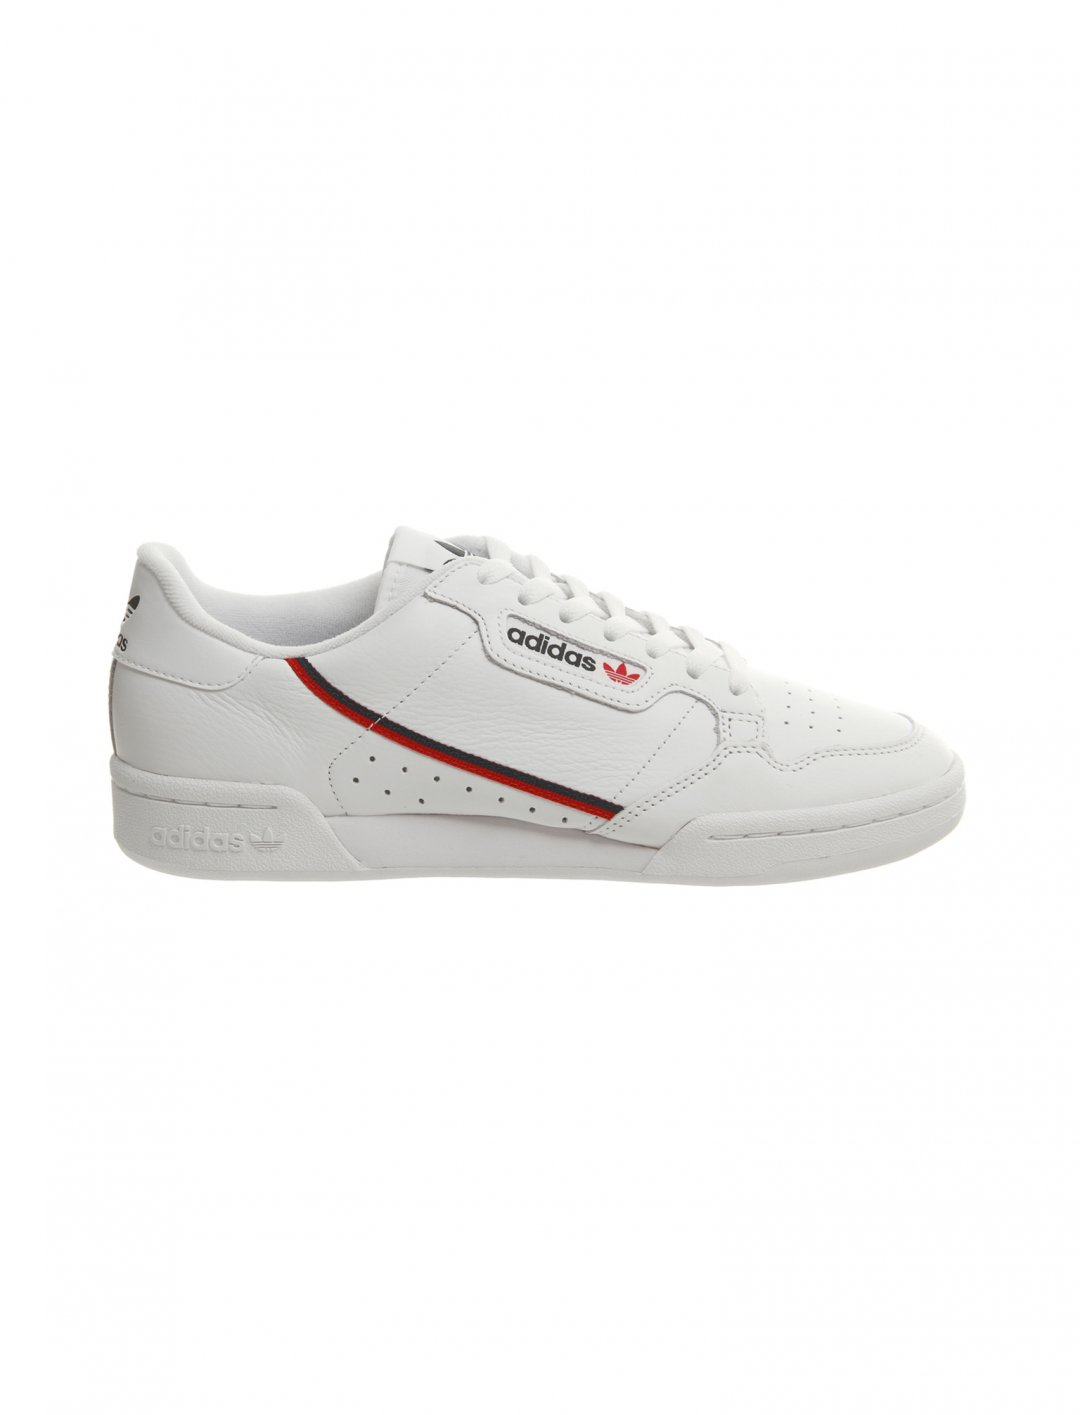 "Continental 80s' Trainers {""id"":12,""product_section_id"":1,""name"":""Shoes"",""order"":12} adidas"